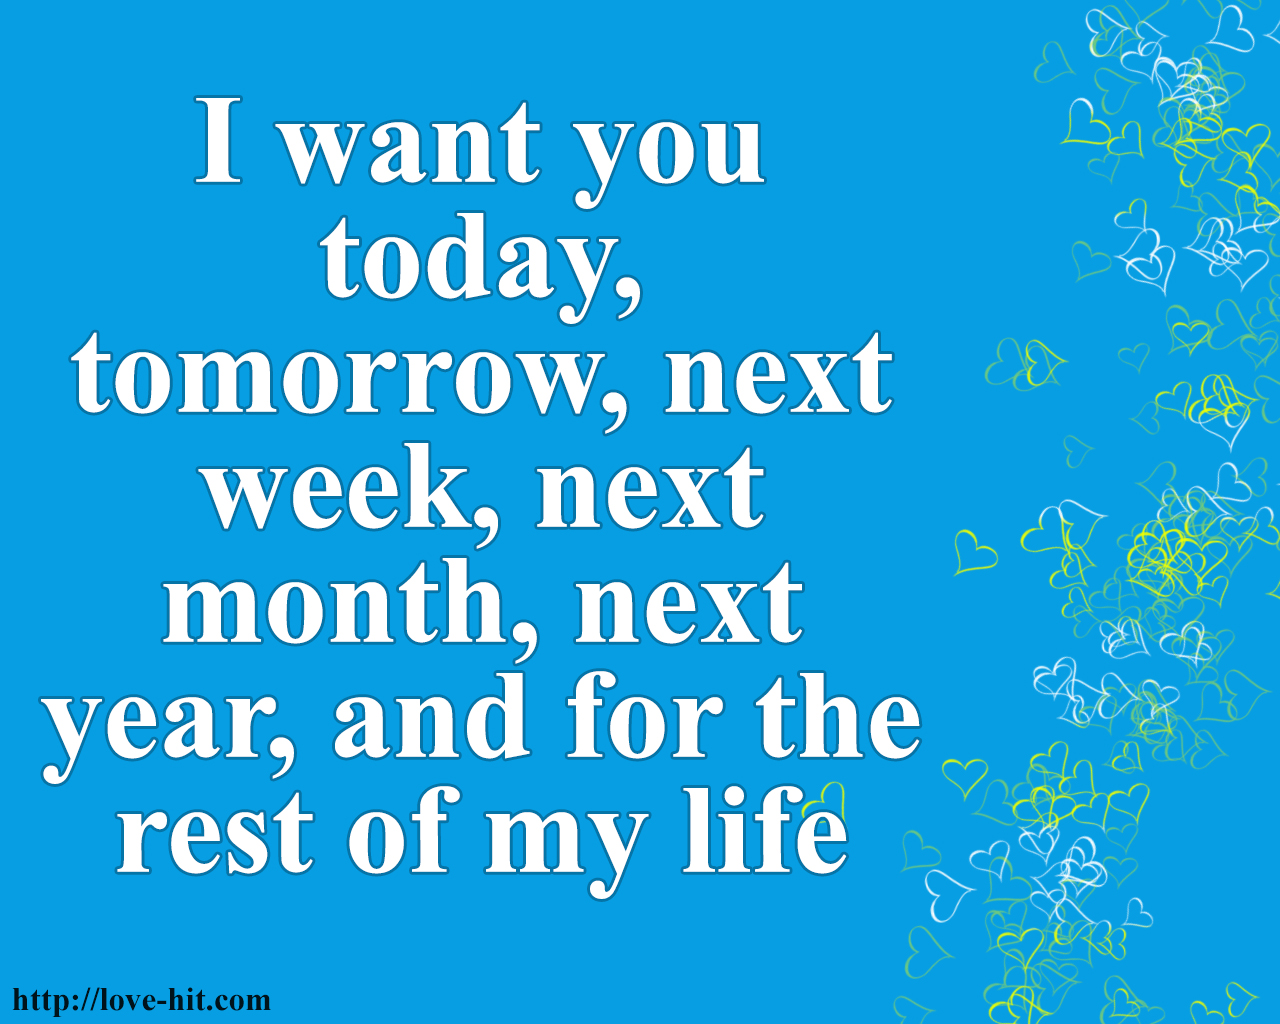 I want you today, tomorrow, next week, next month, next year, and for the rest of my life